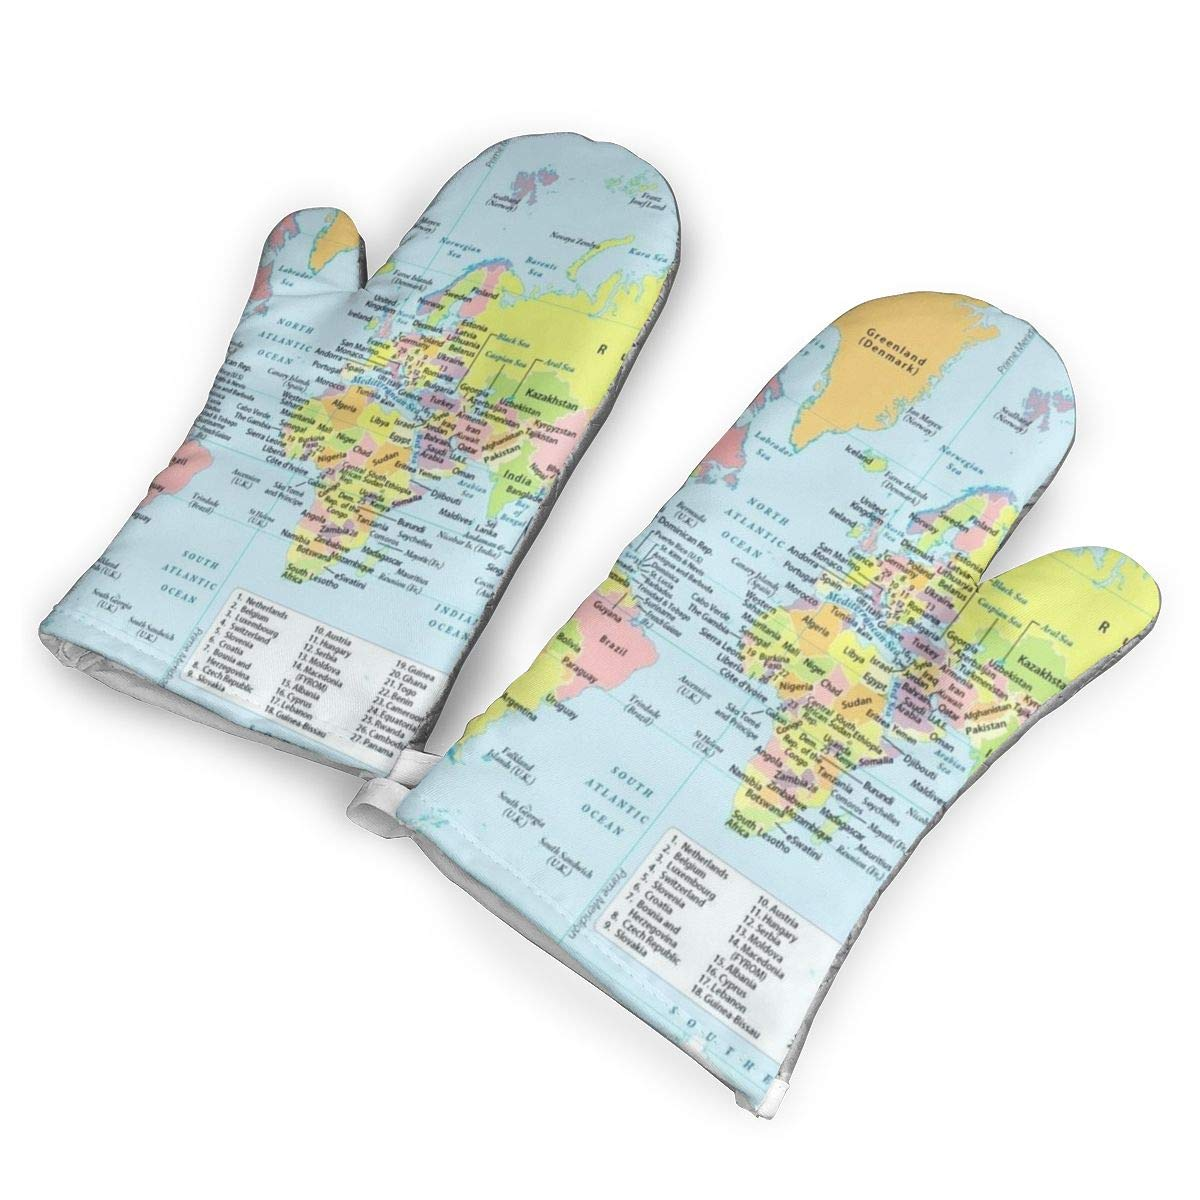 Feederm World Map with Countries and Capital Cities Oven Mitts,Professional Heat Resistant Microwave Oven Insulation Thickening Gloves Baking Pot Mittens Soft Inner Lining Kitchen Cooking